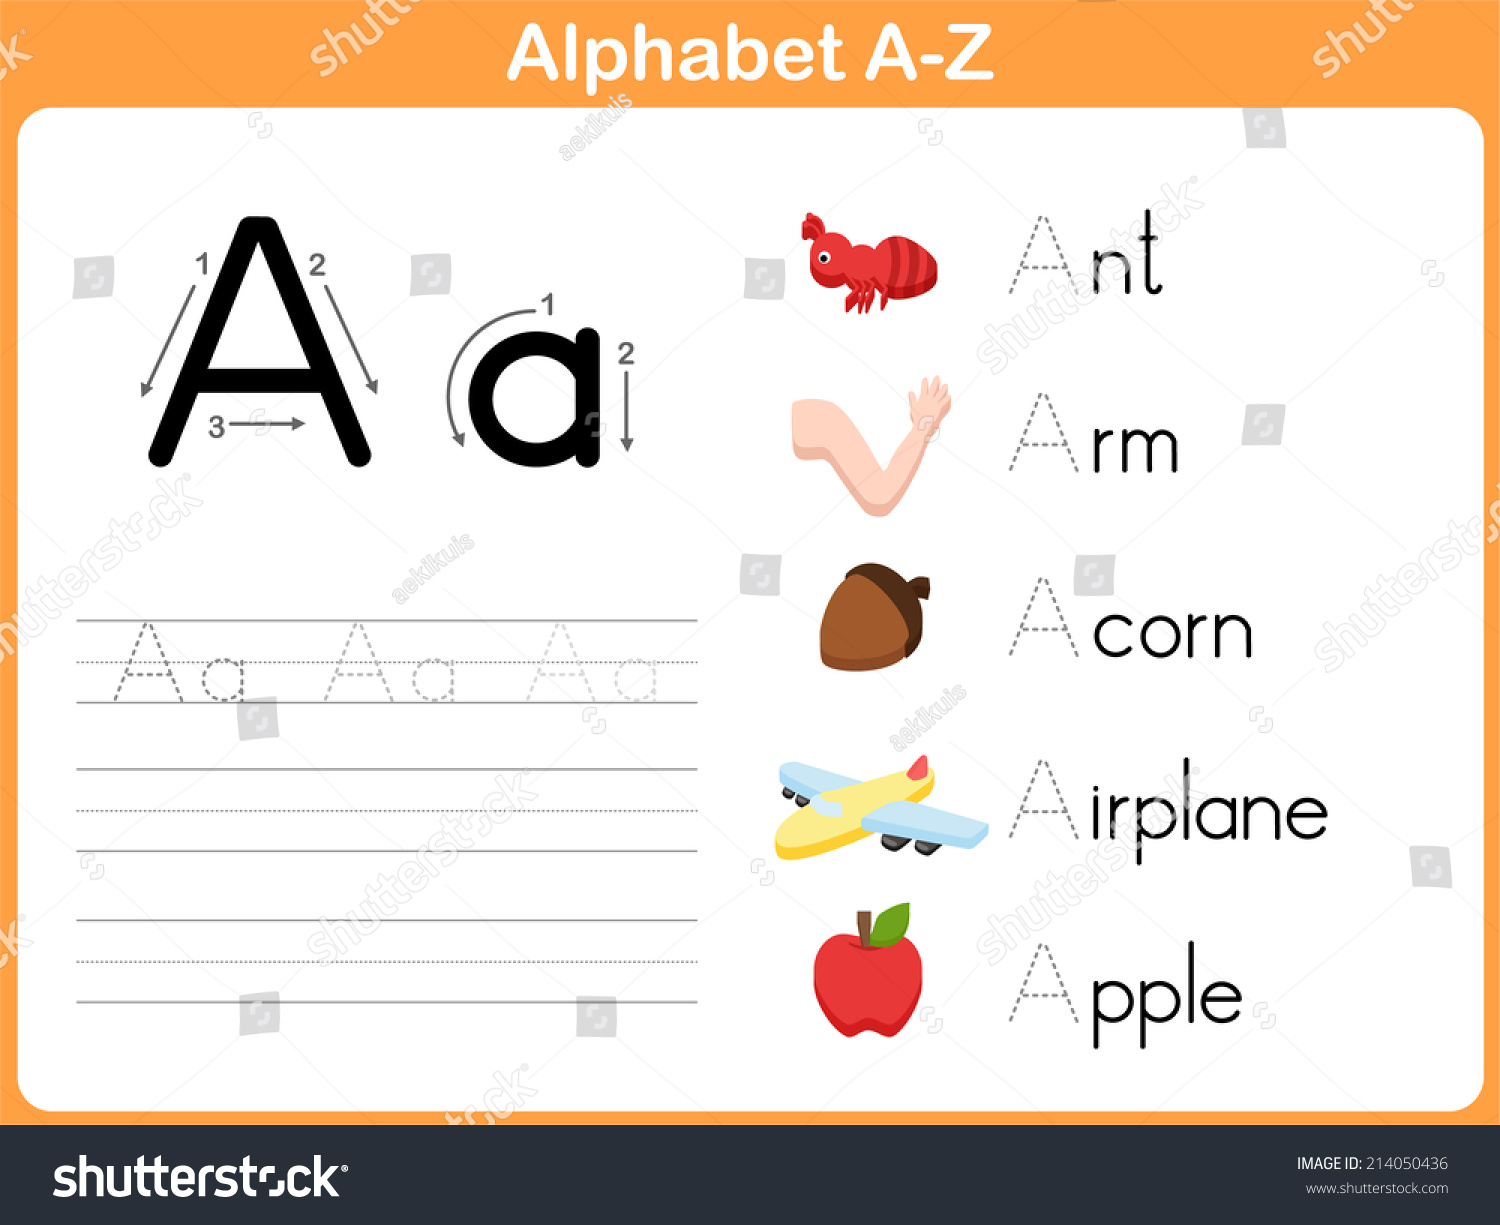 Worksheets Free Printable Alphabet Worksheets A-z free printable alphabet worksheets a z sharebrowse traceable rringband